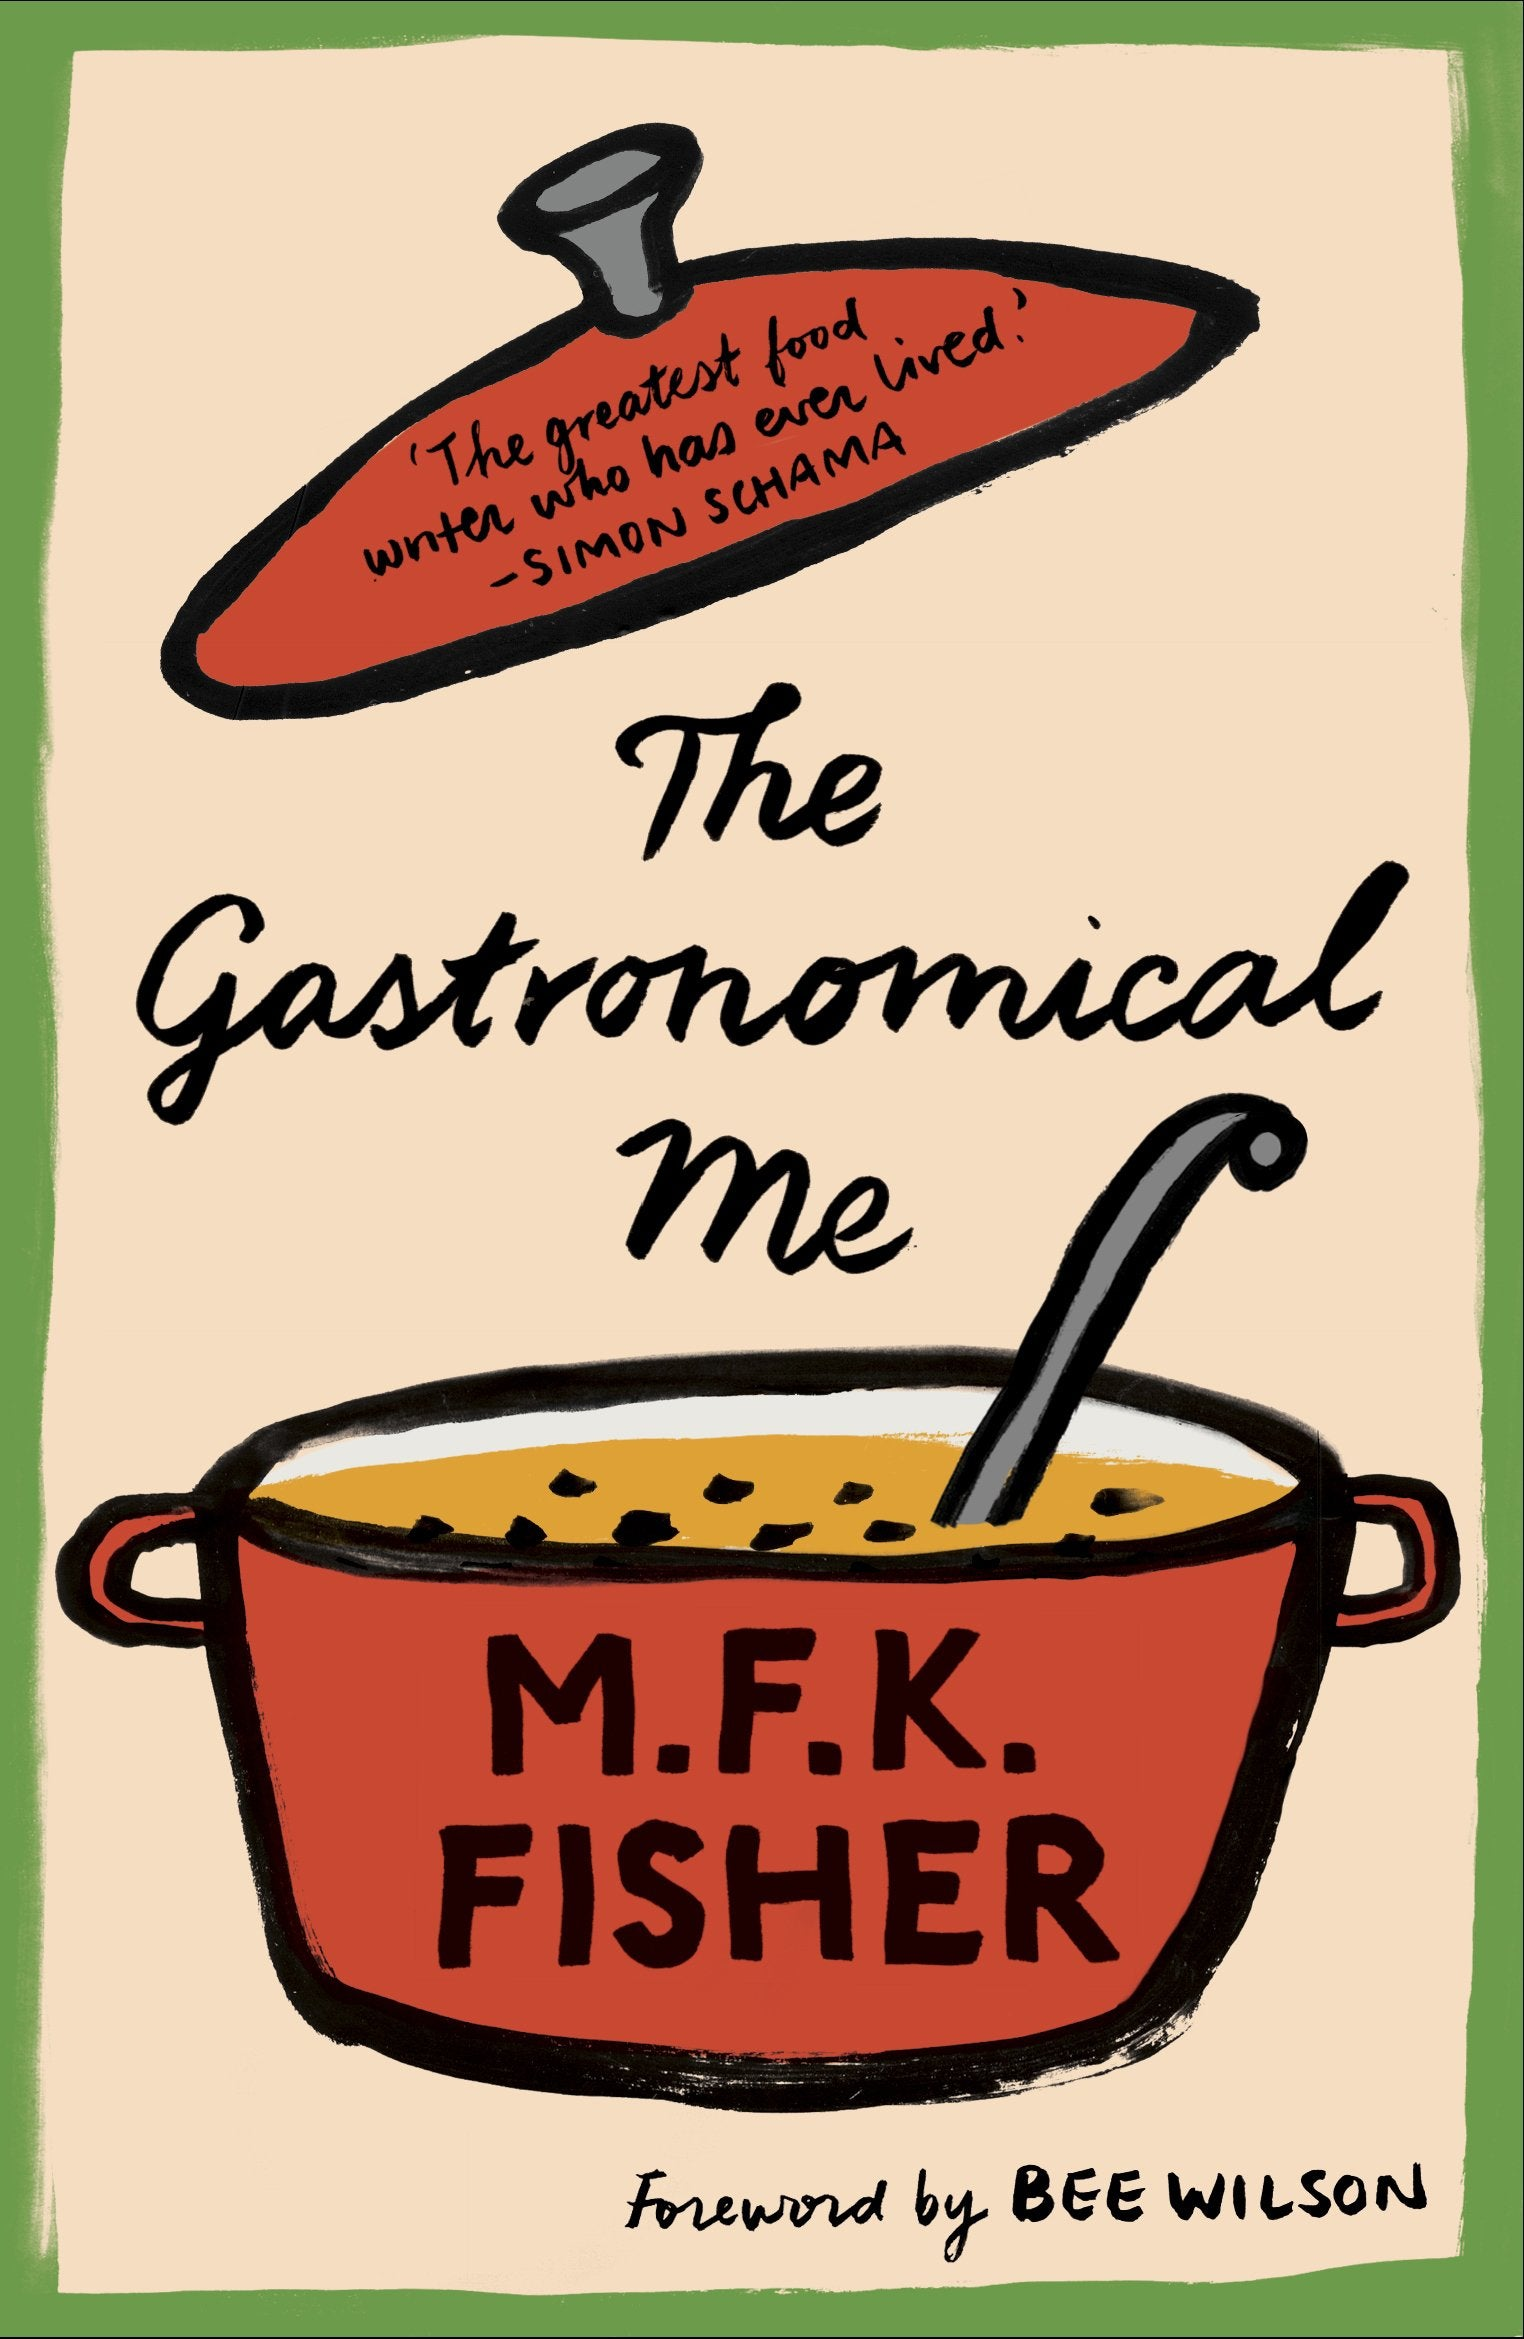 M.F.K Fisher:The Gastronomical Me